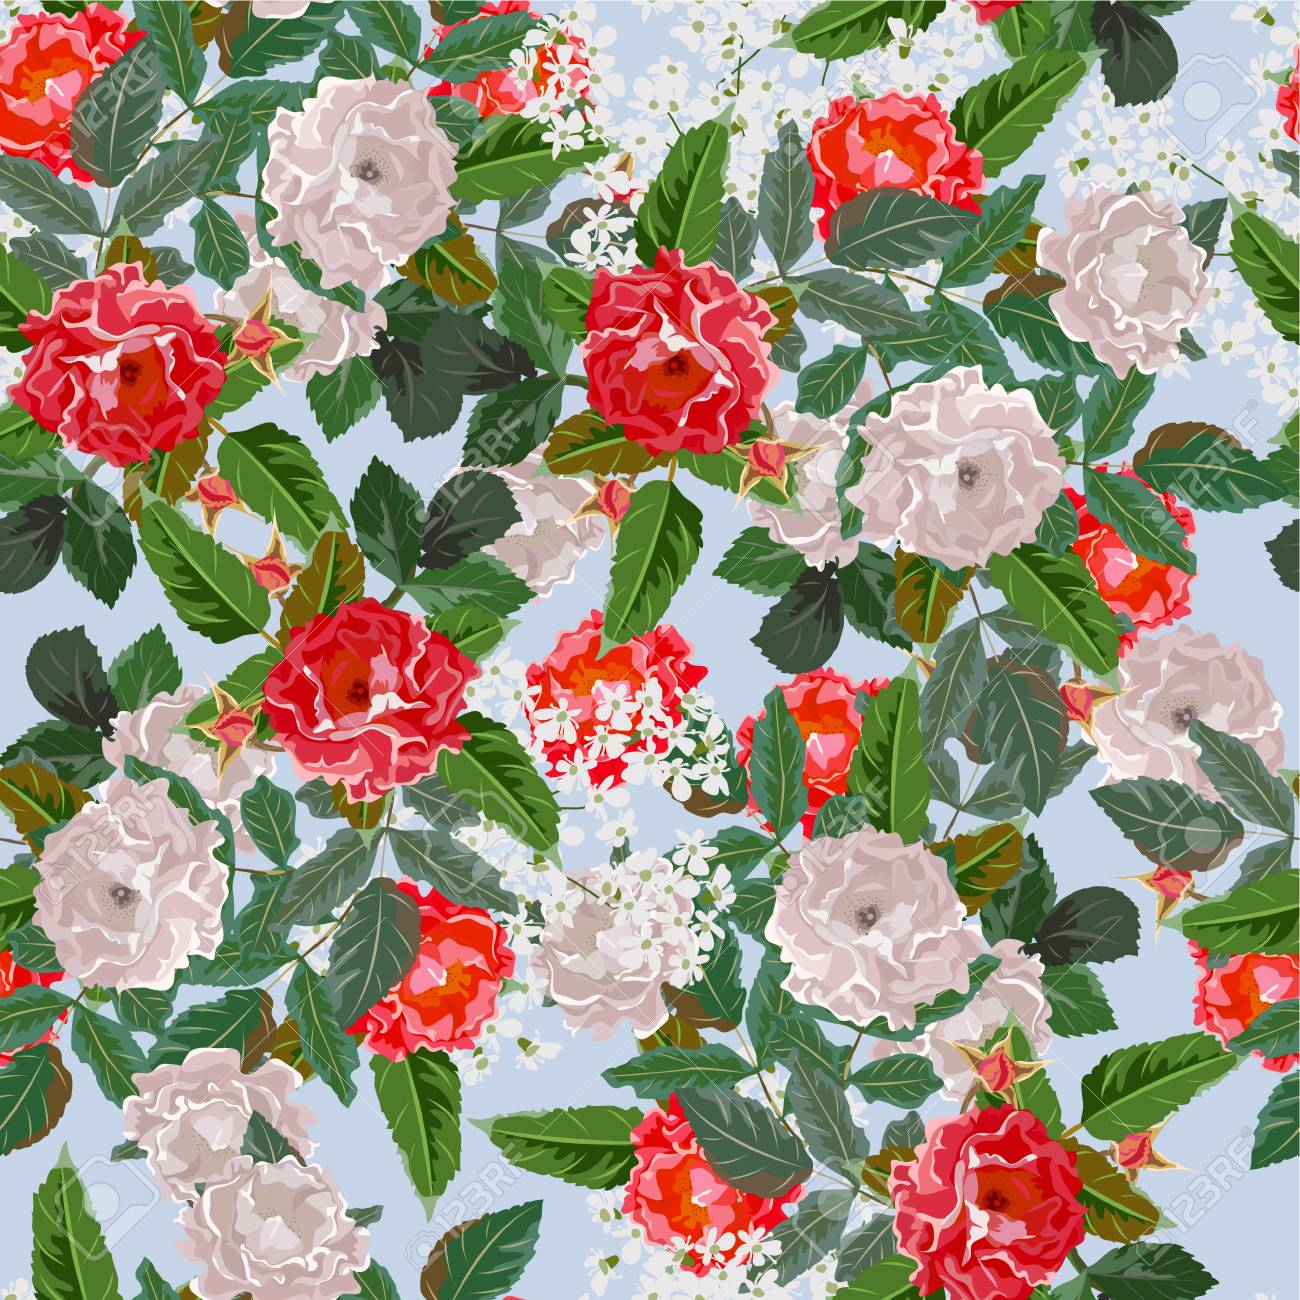 Seamless Background With Red And White Roses Design For Cloth